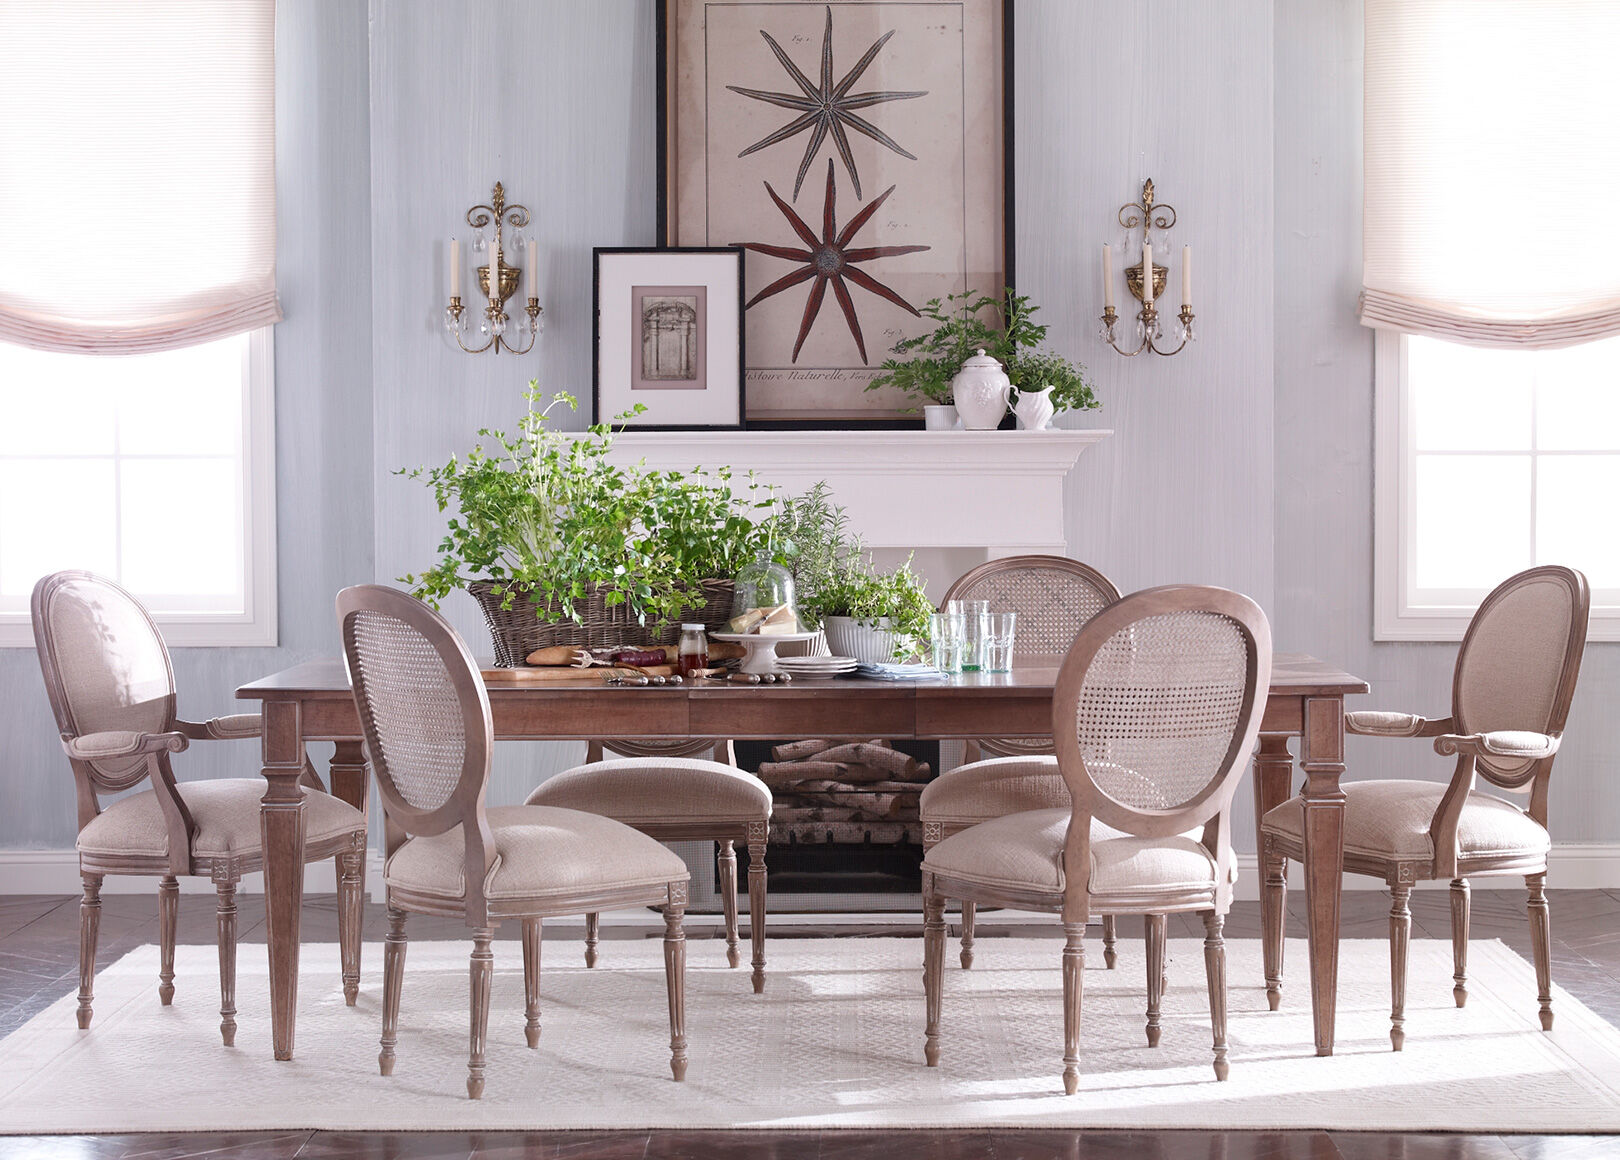 Terrific Ethan Allen Dining Room Table And Chairs Photos   3D .